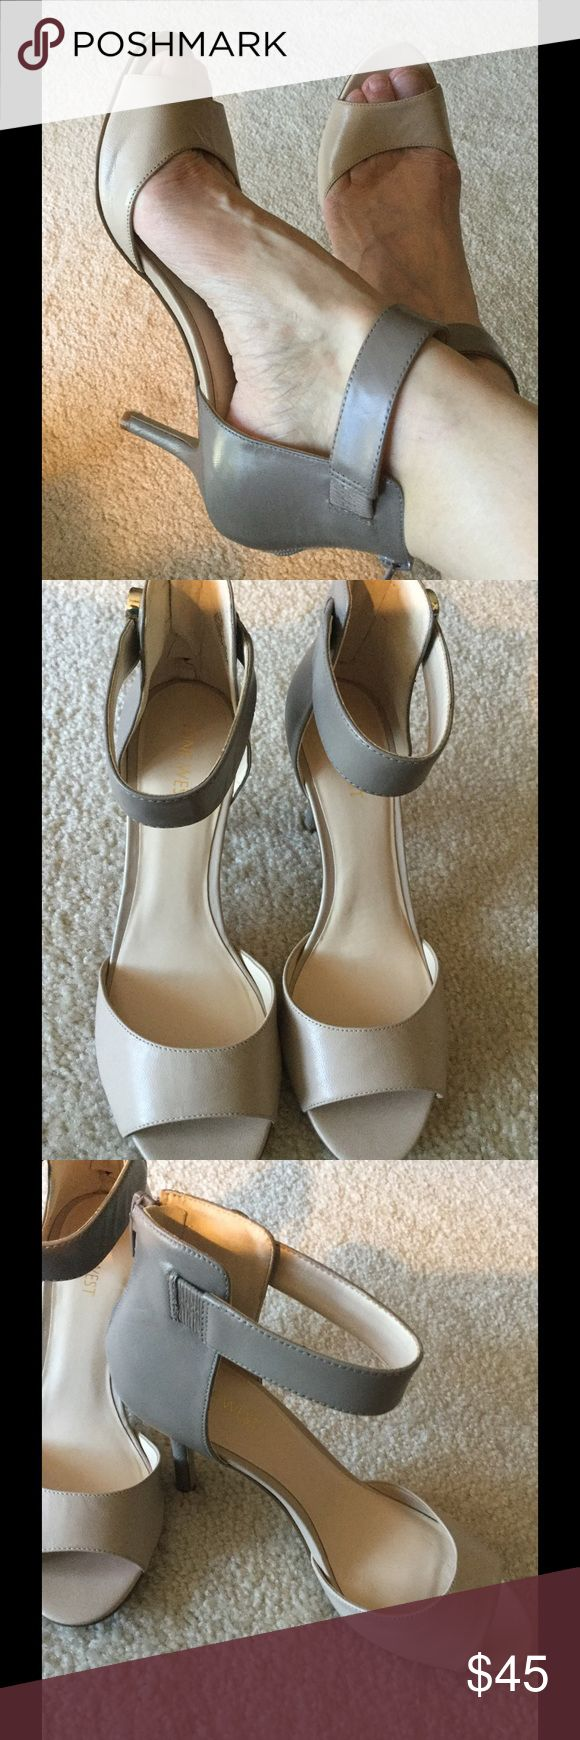 """Two tones beige/taupe BNWOB Size 7.5, heel 3"""", a little tight in toe box, probably would fit 7 better Nine West Shoes Heels"""